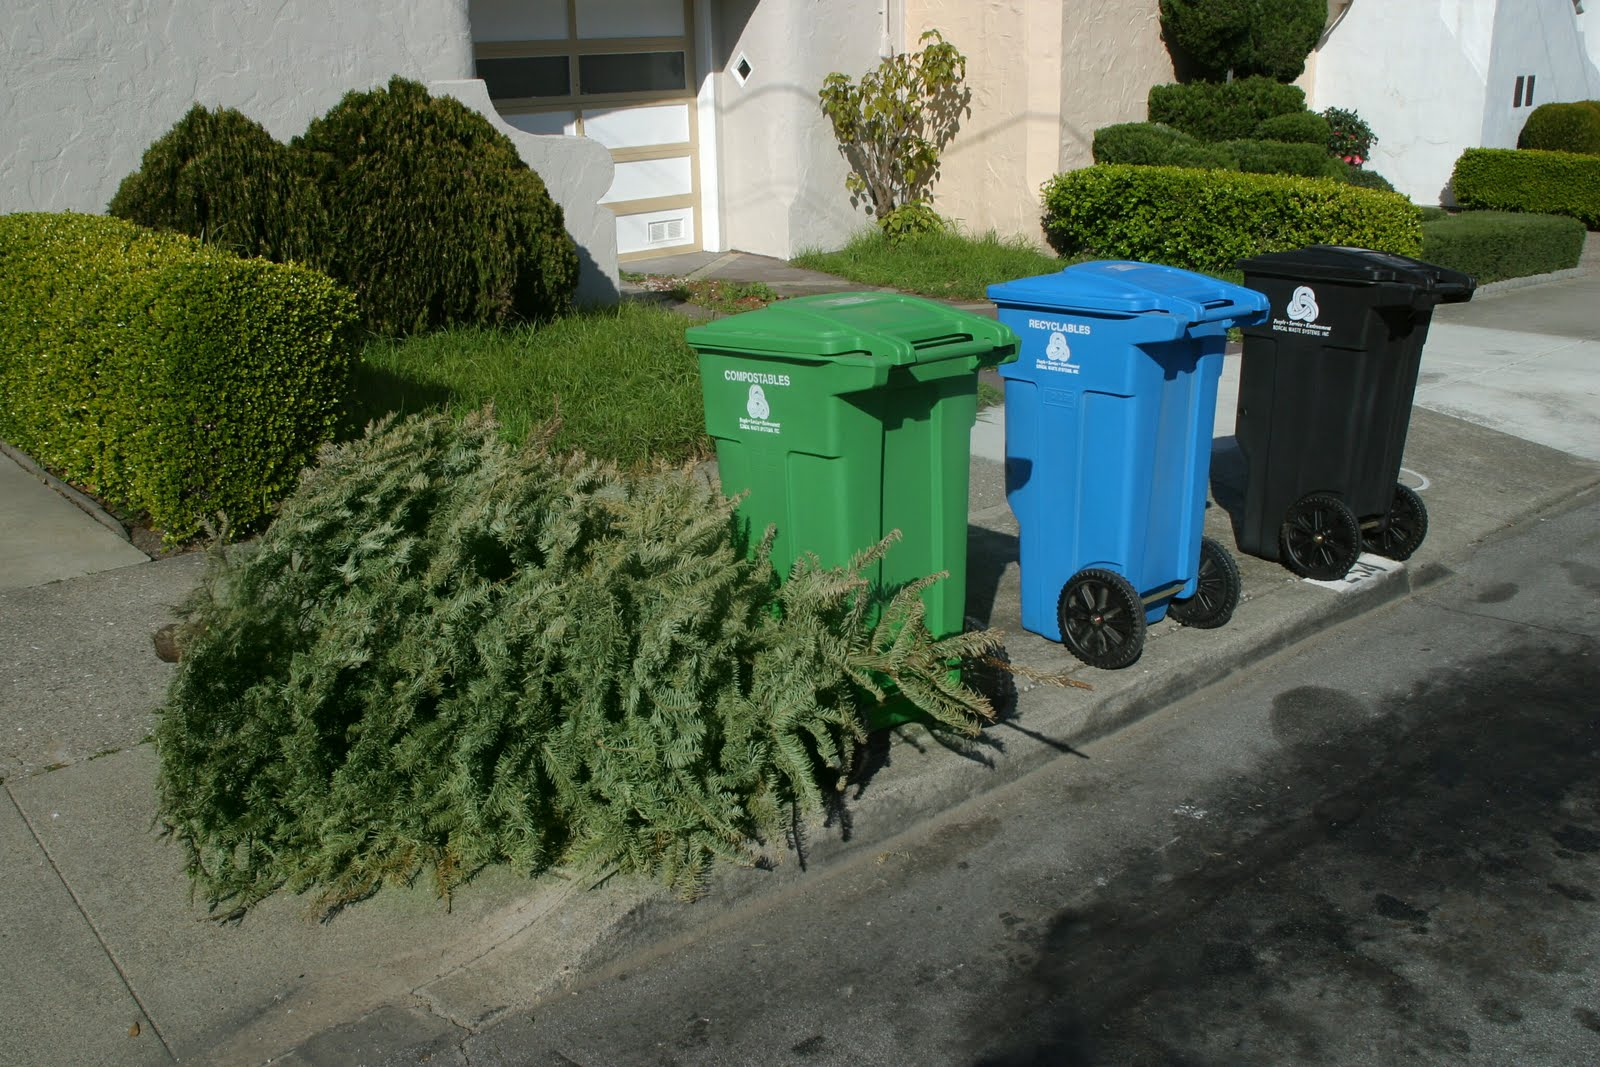 Holiday Clean Up, Green Up: How To Avoid Dumping The